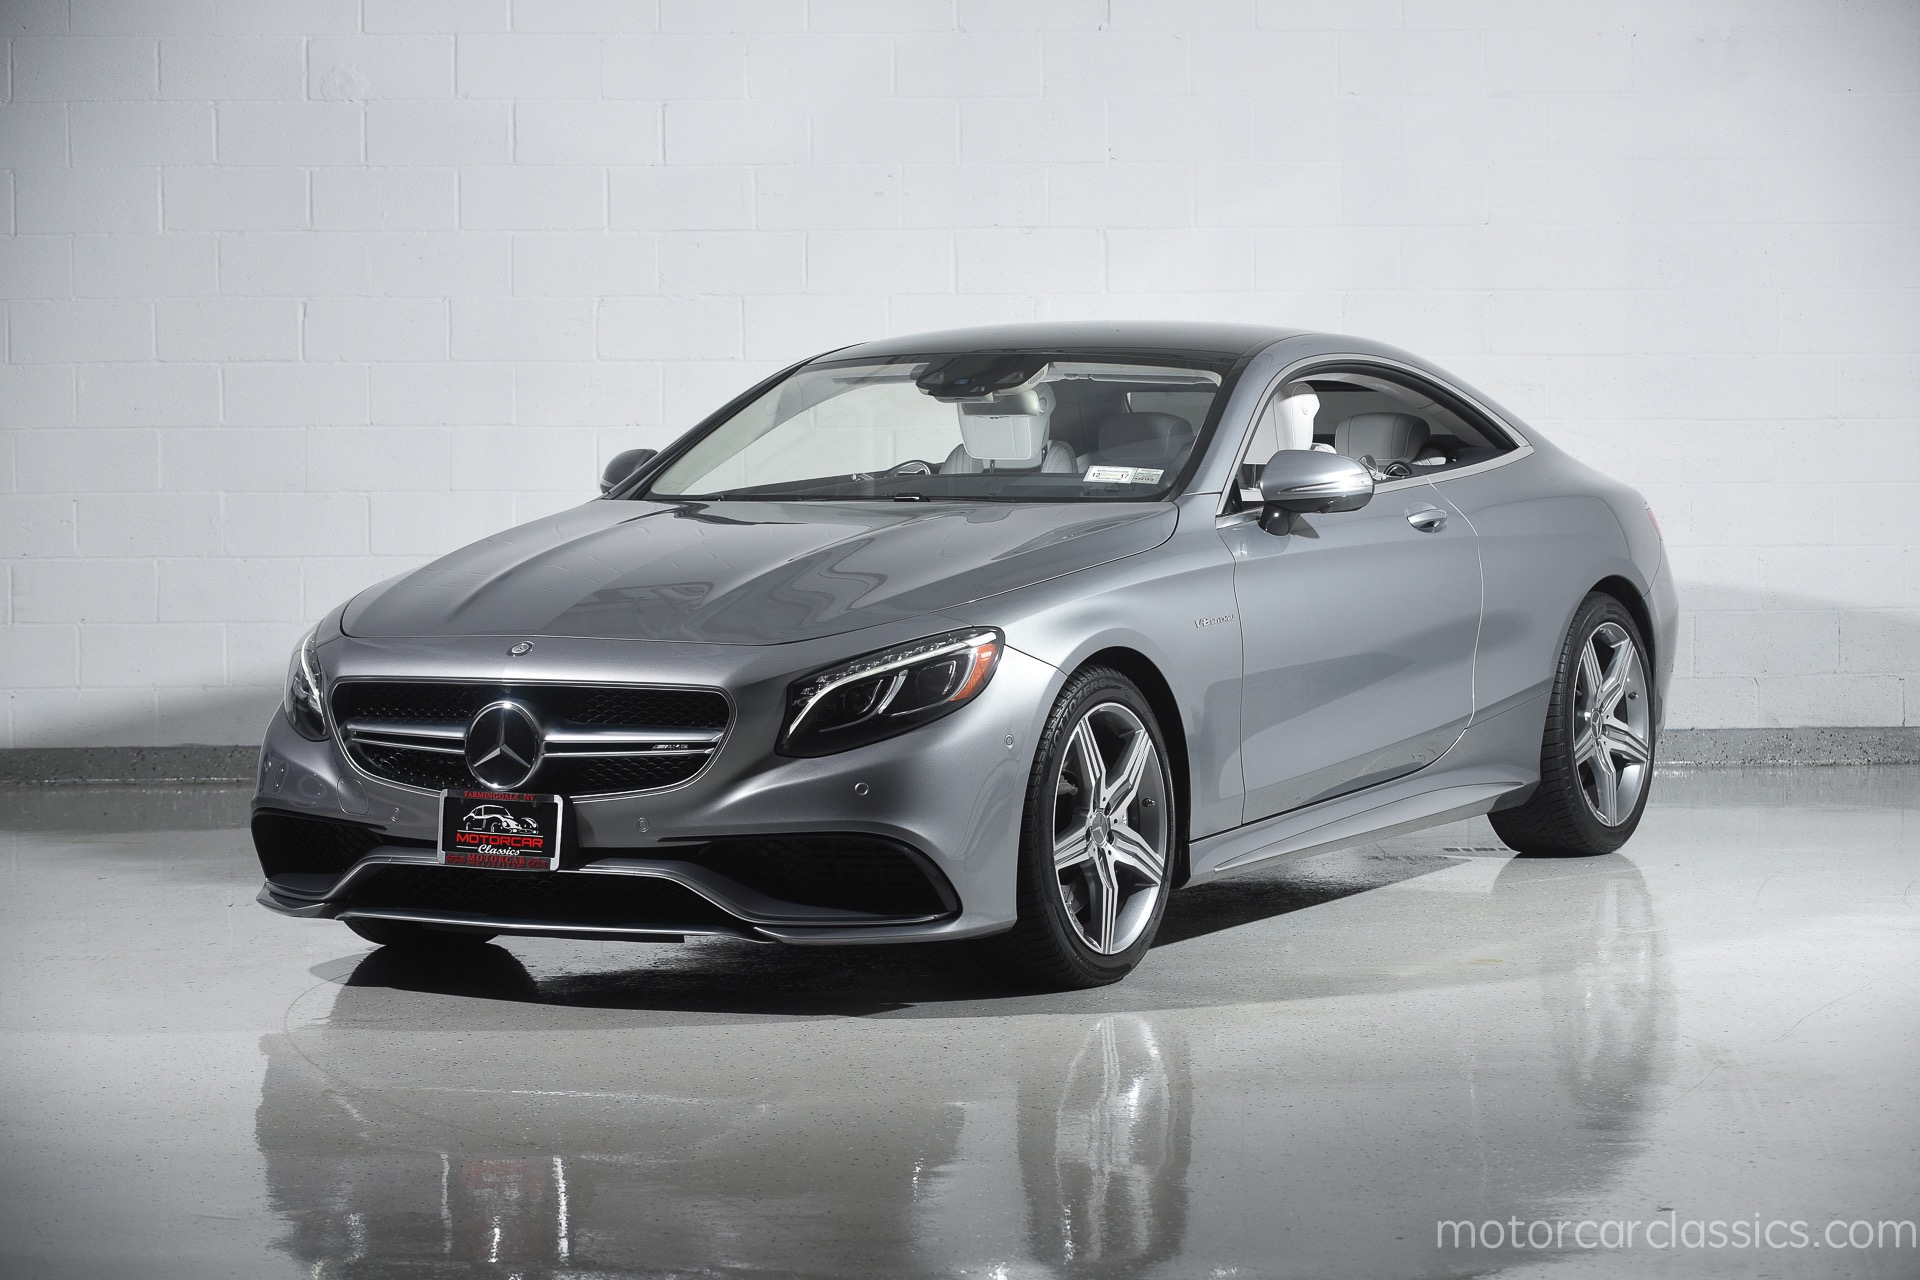 2015 mercedes benz s63 amg motorcar classics exotic for 2015 mercedes benz s63